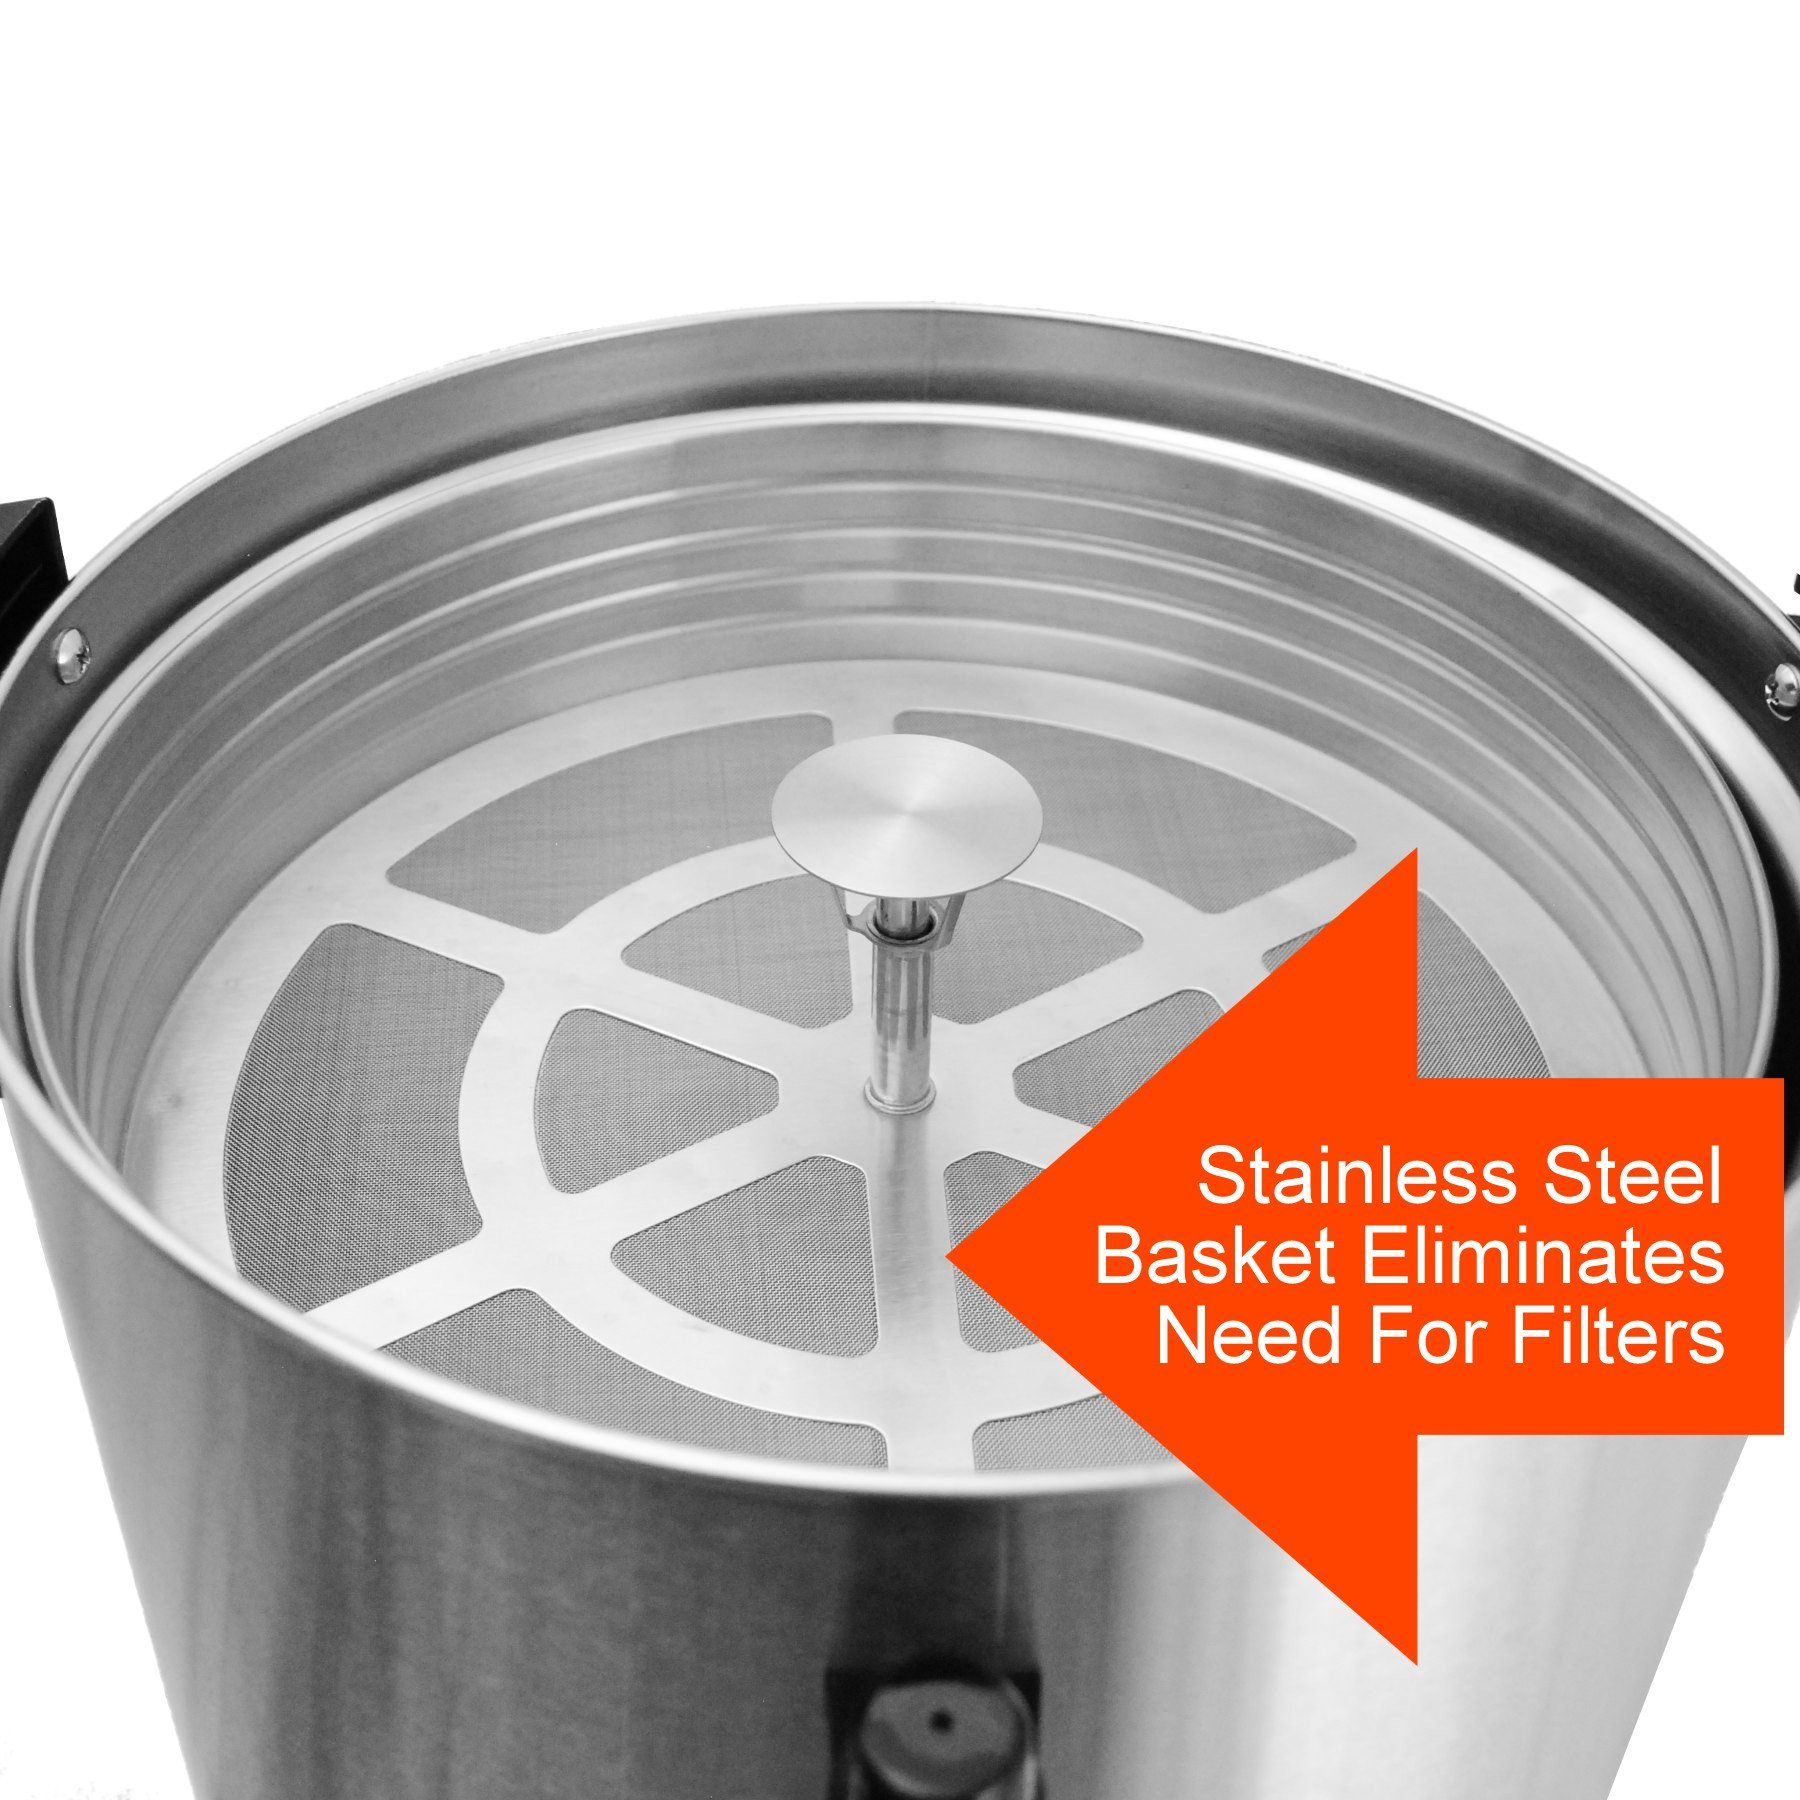 Cafe Amoroso 100 Cup Stainless Steel Coffee Urn - Premium Commercial Double Wall Design - Perfect For Catering, Churches, Banquets, Restaurants - 1 Year Warranty by Cafe Amoroso (Image #3)